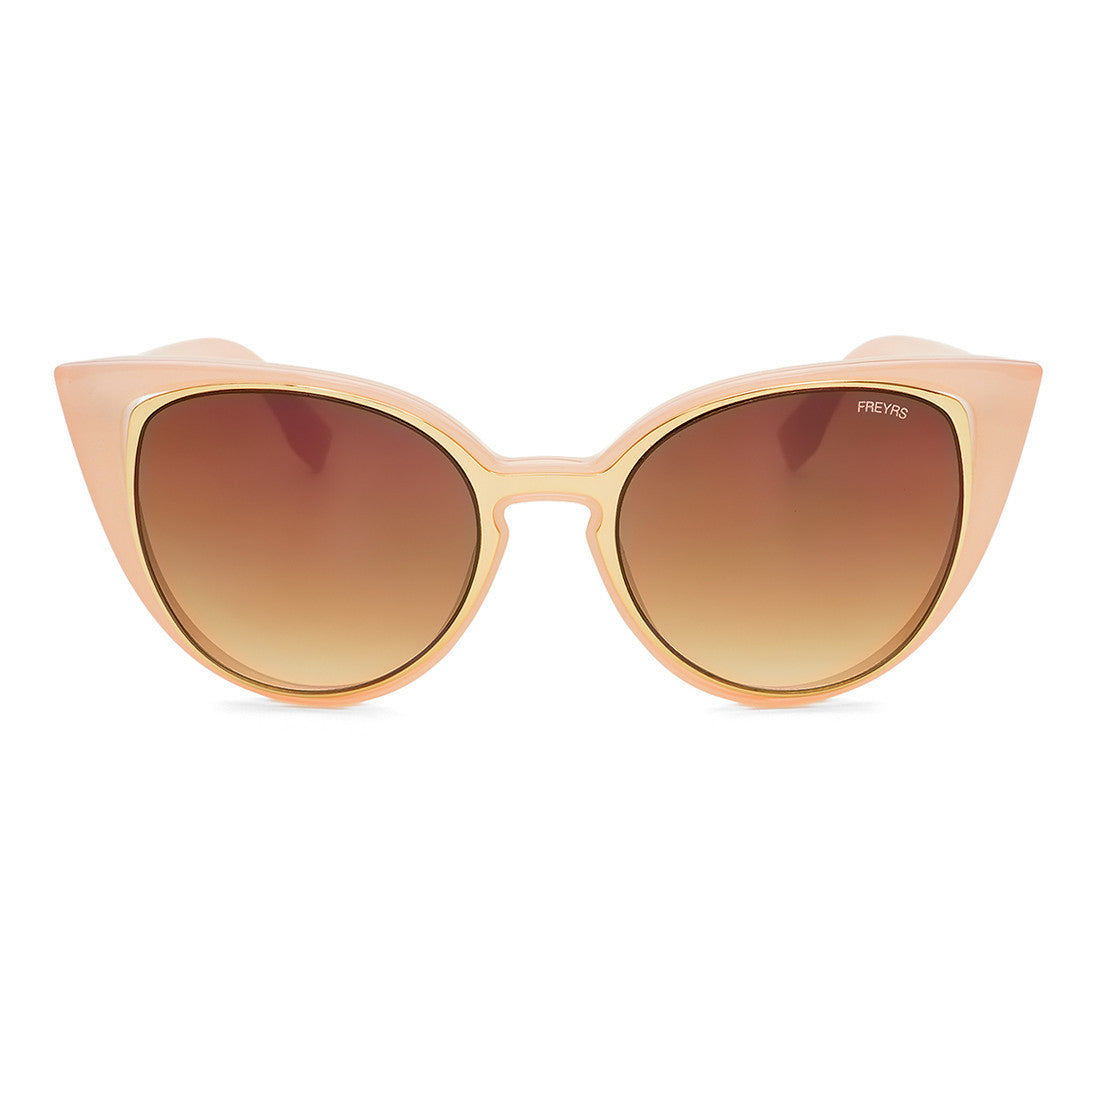 Imara's Sunglasses - LoveEmme, Product_Type, Product_Vendor